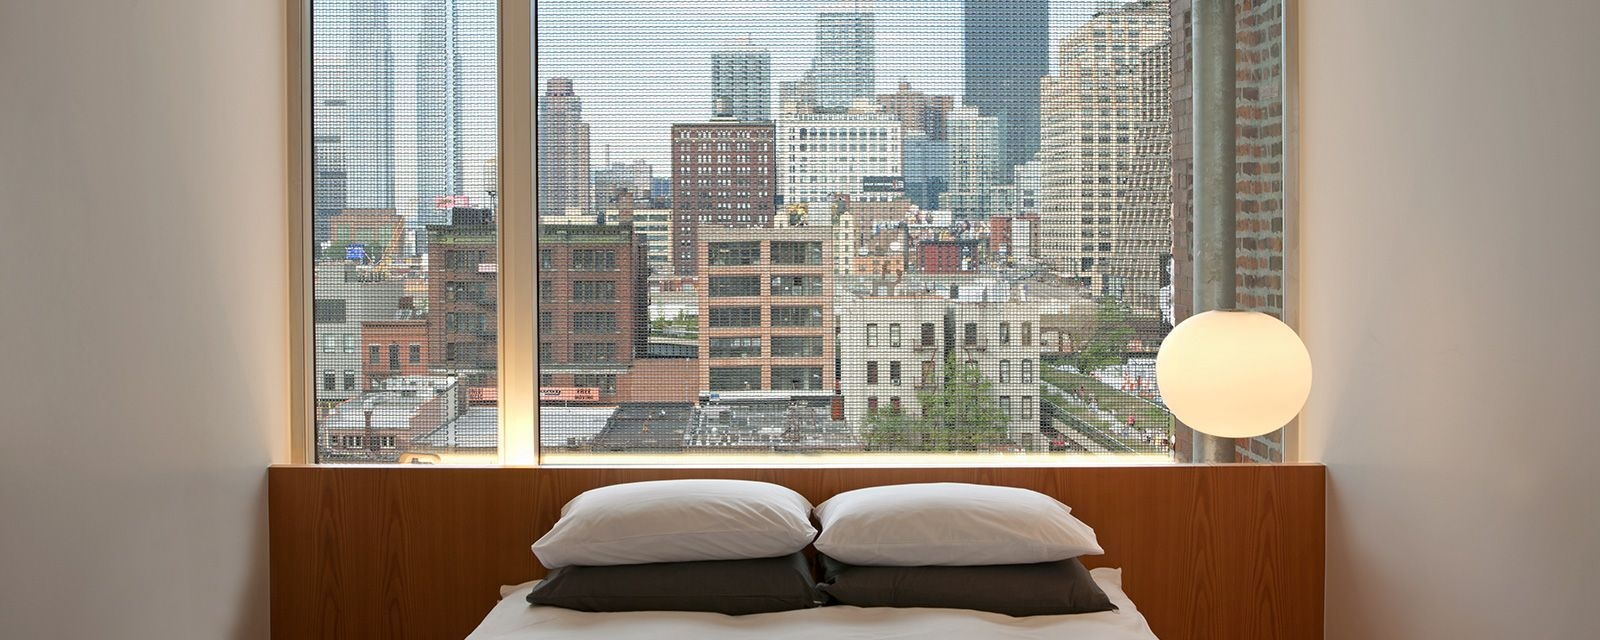 Hotel Americano View in NYC, United States